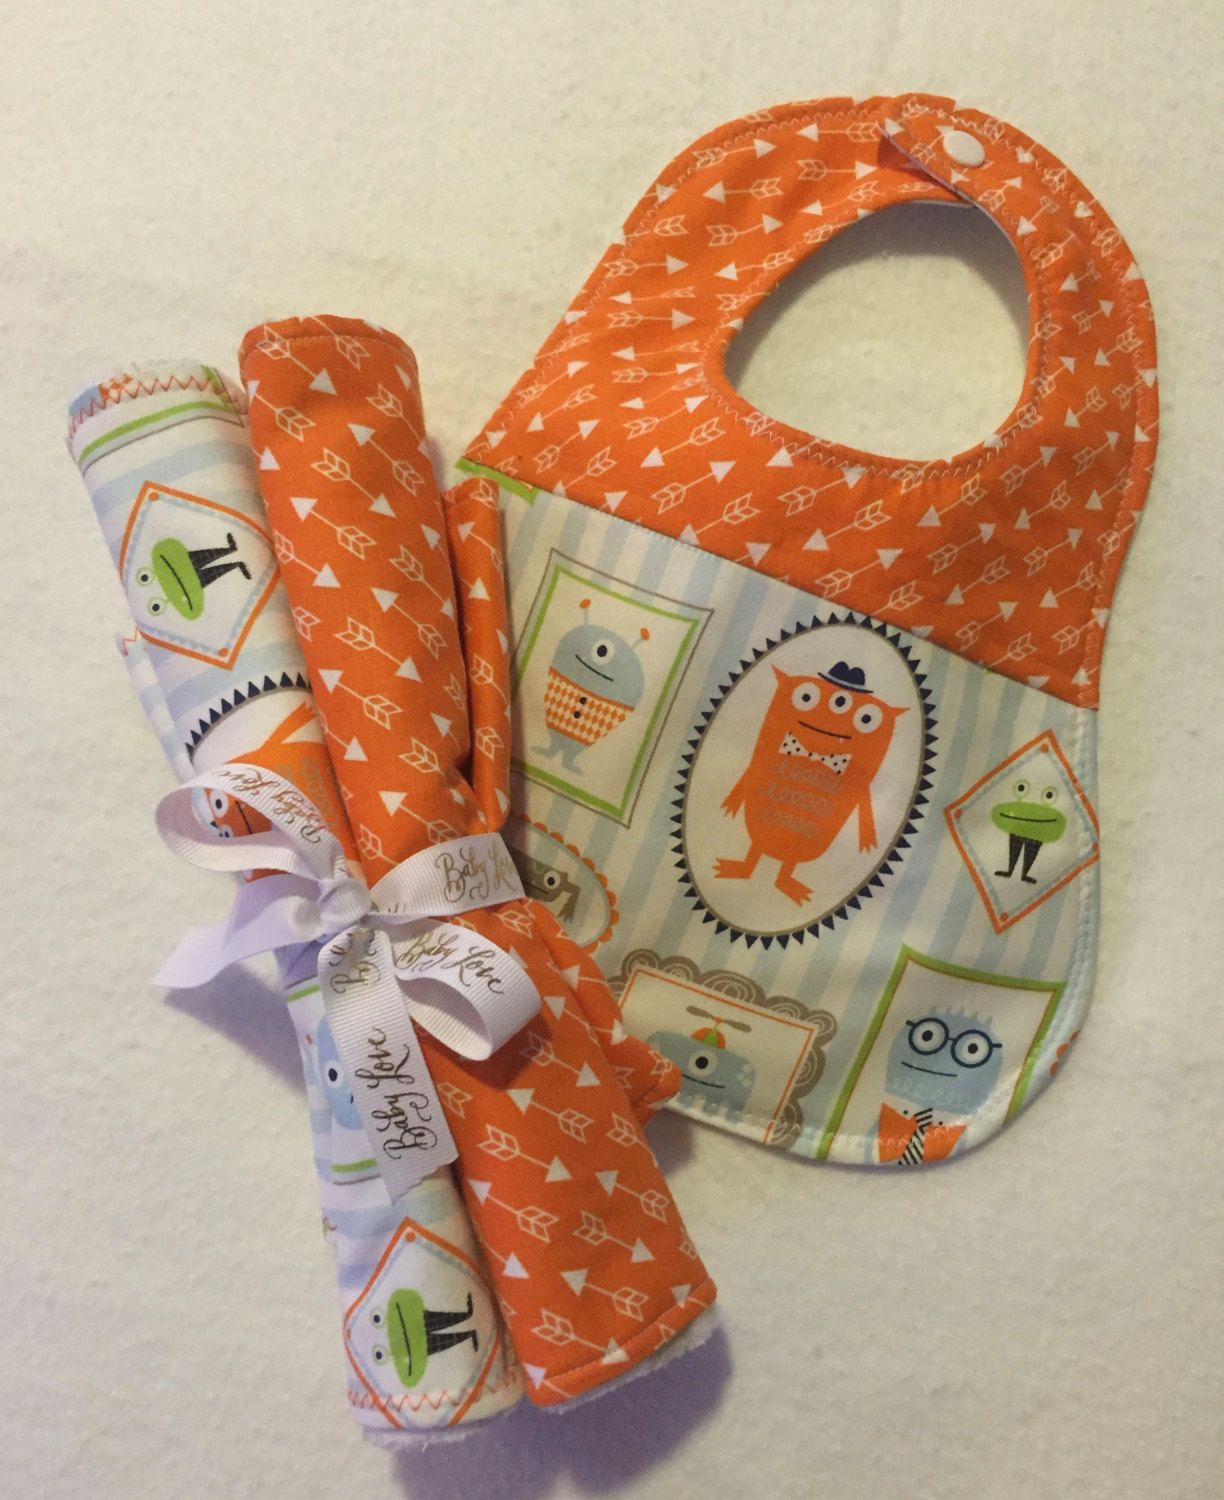 Baby Burp Cloth and Bib Set, Baby Boy Burp Cloth and Bib Set, Baby Girl Burp Cloth and Bib Set, Gender Neutral Set, Orange Monsters. by SassyCecyBabyShop on Etsy